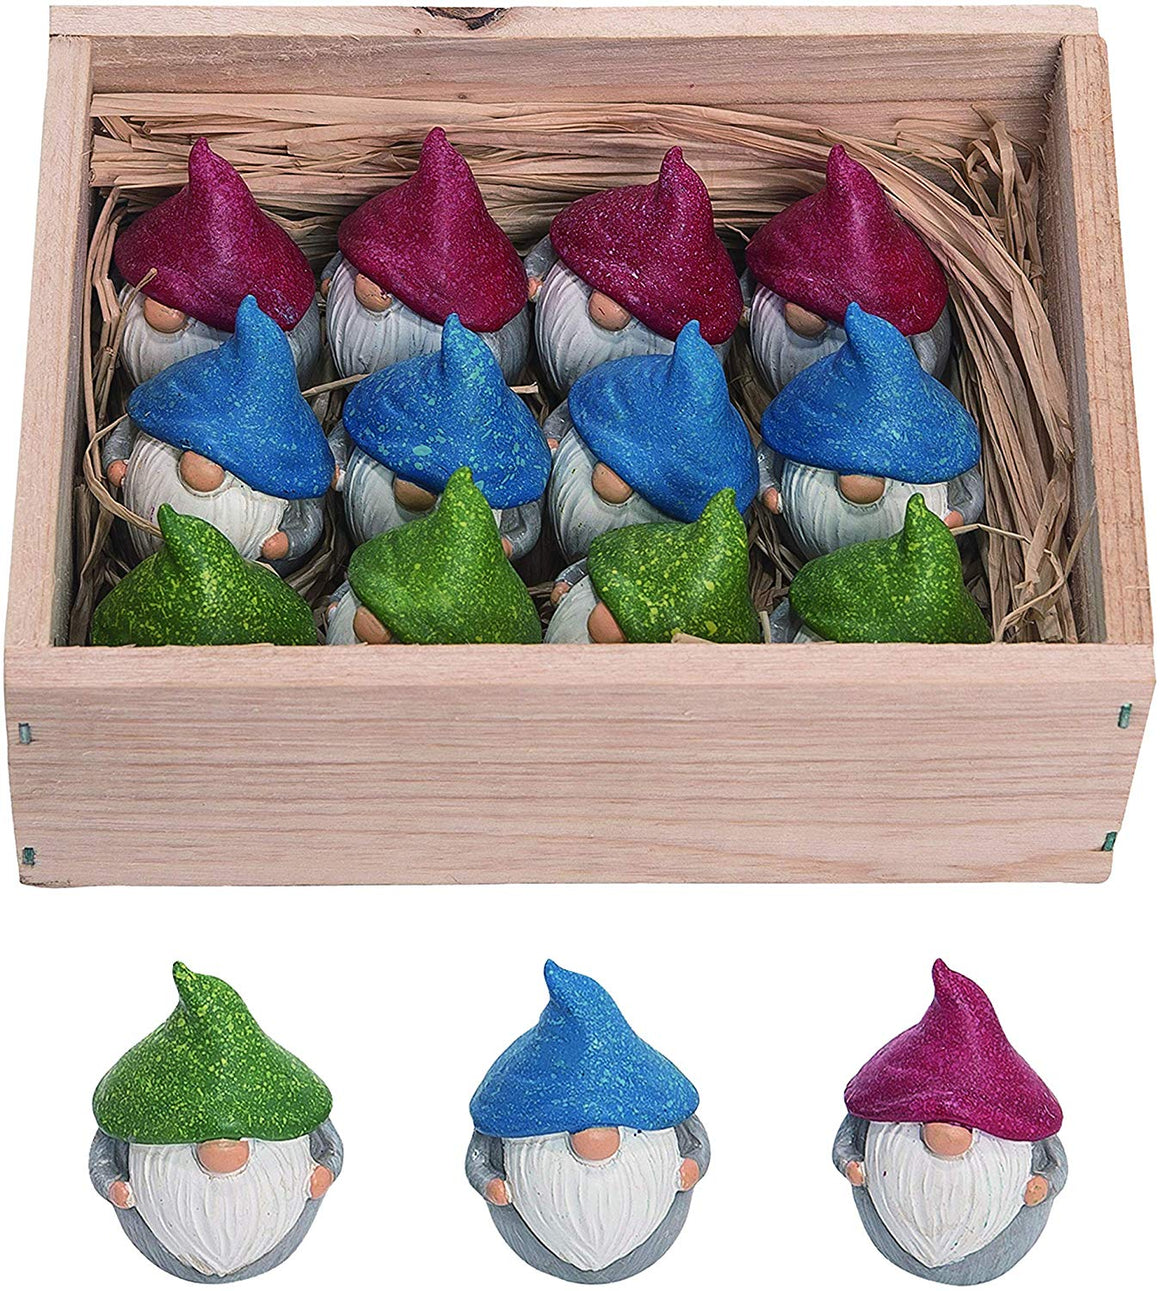 Set of 12 Resin Mini Gnomes, 1.75 inches High, Swedish Tomte Gnome Set for Garden and Decor in Red, Green and Blue